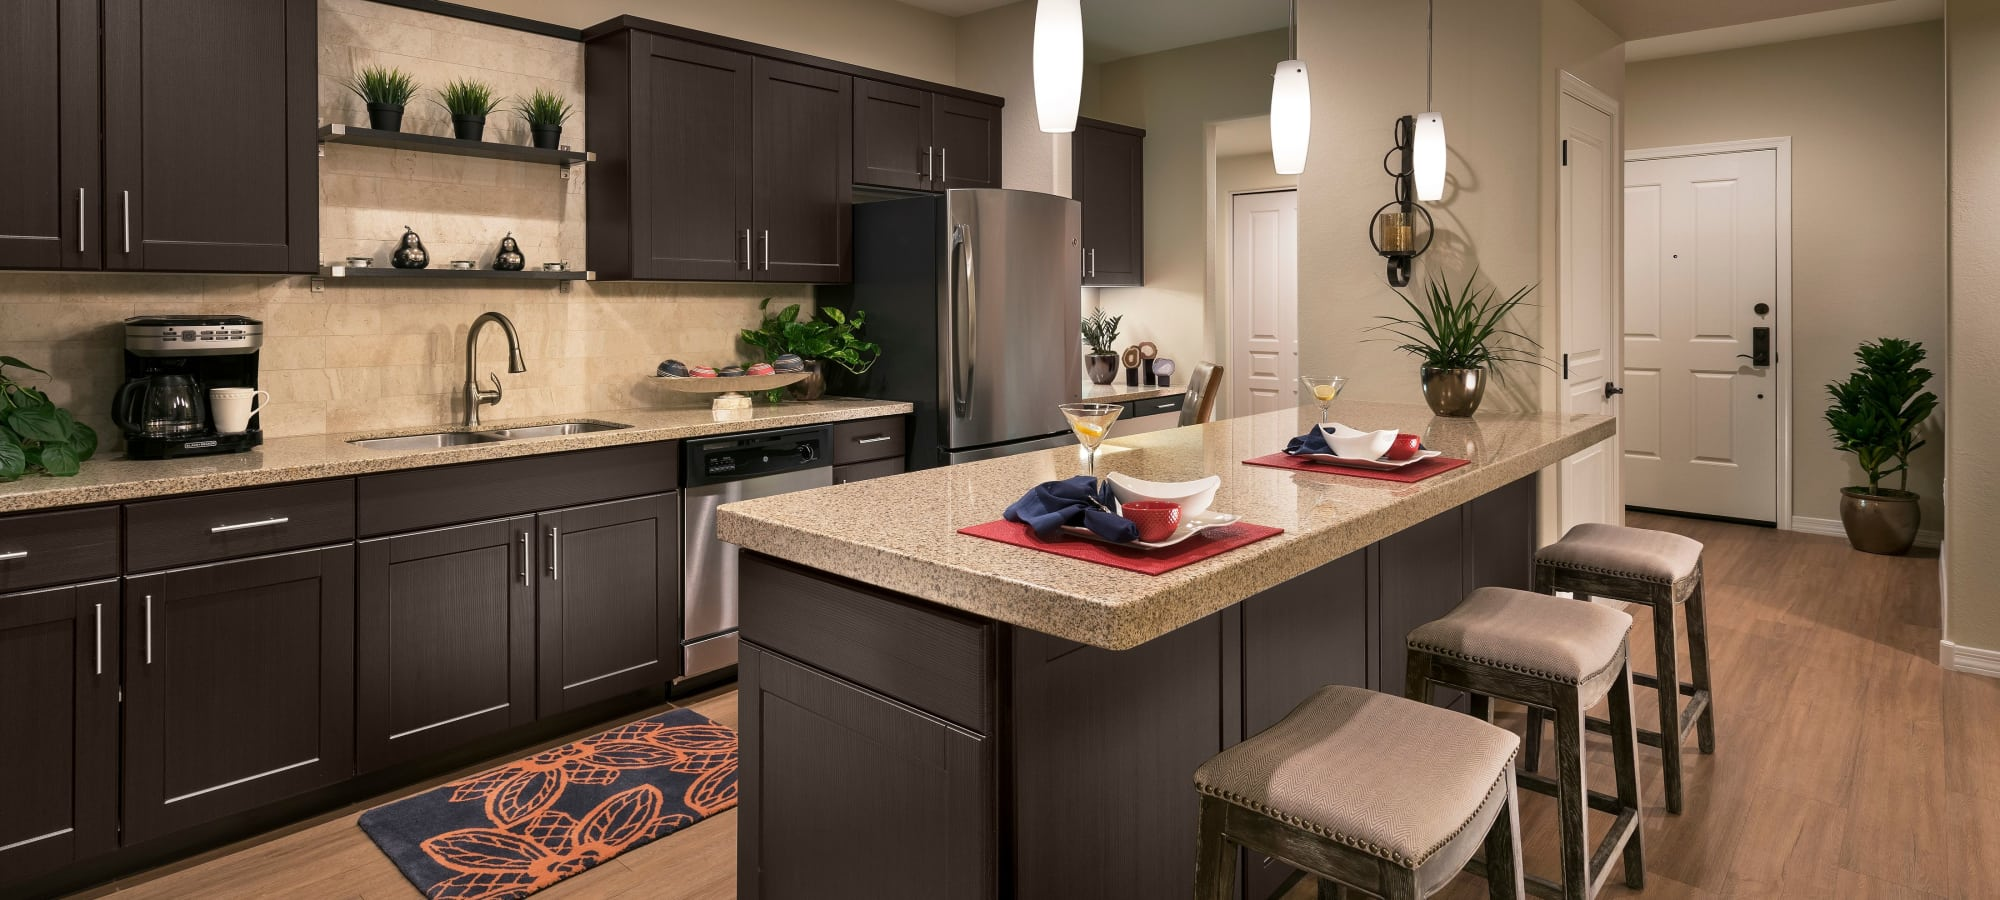 Gourmet kitchen with granite countertops and dark wood cabinetry in model home at San Milan in Phoenix, Arizona